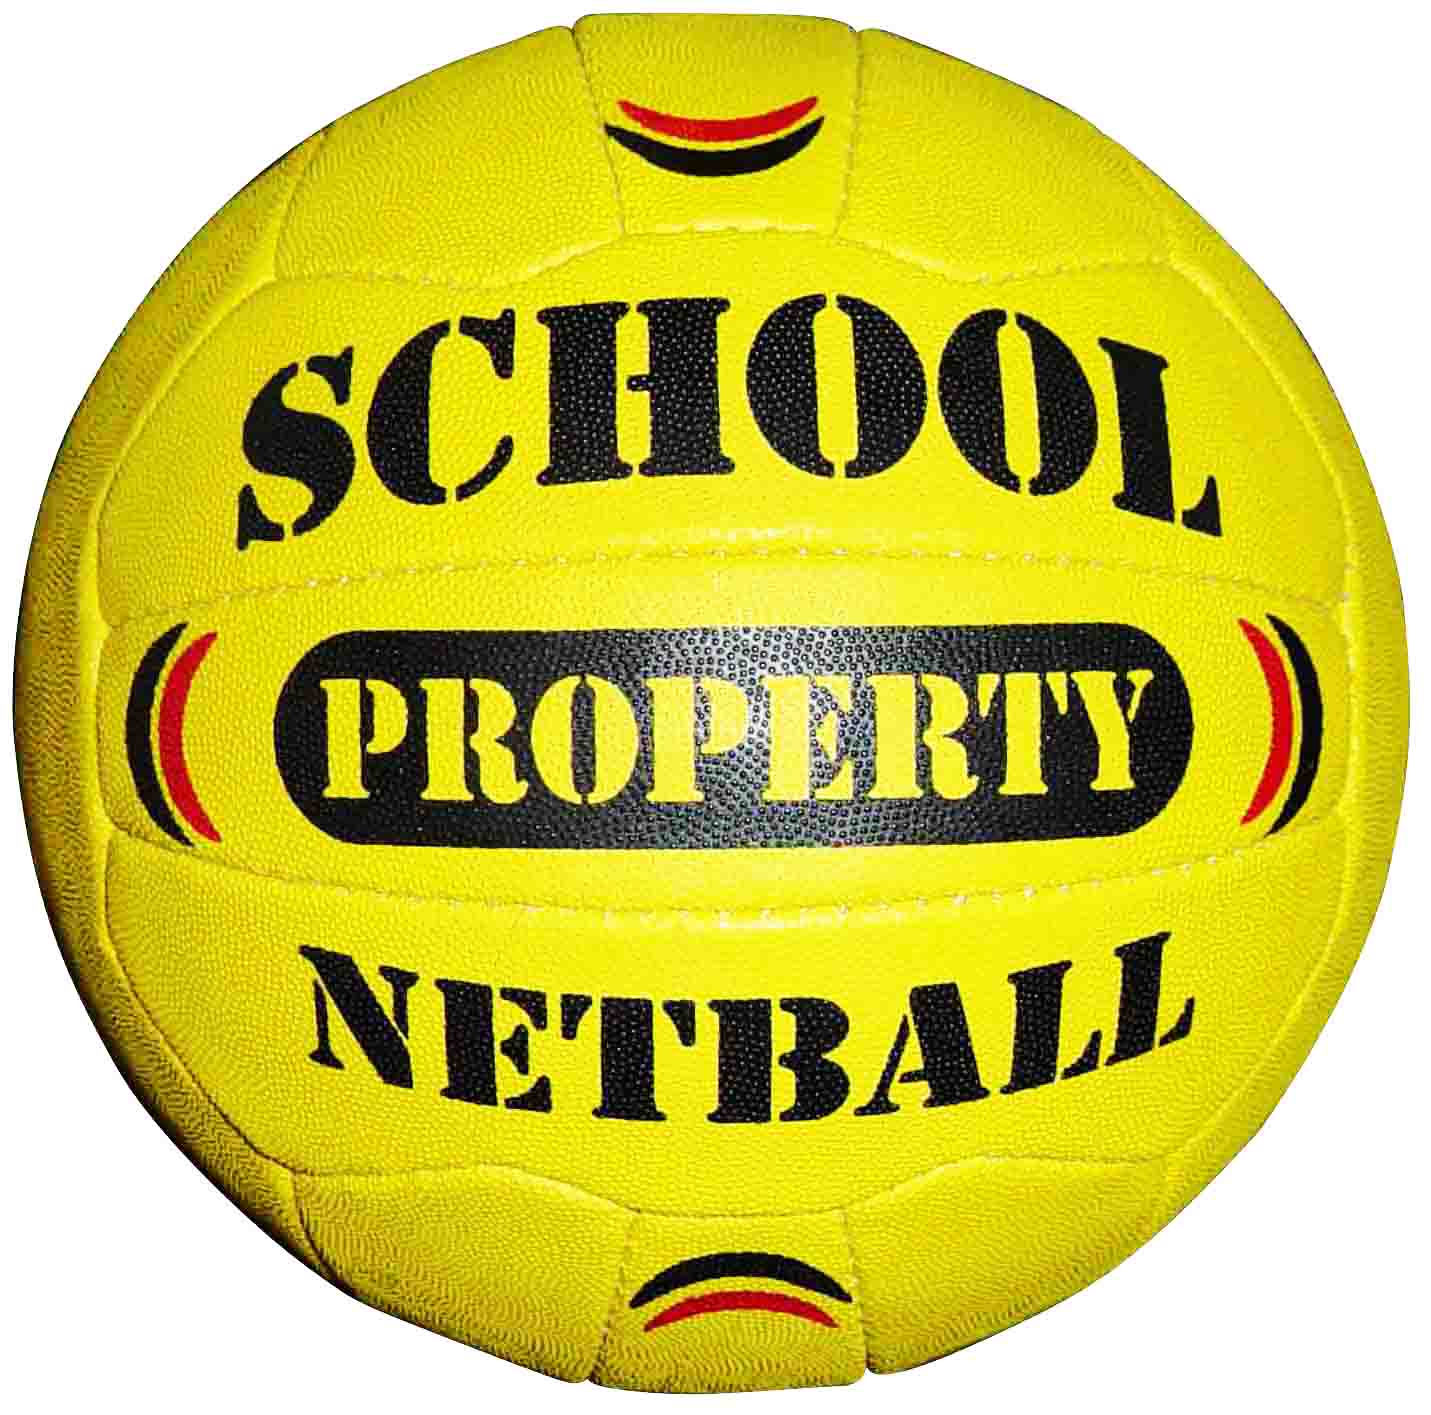 Netball Synthetic Rubber School